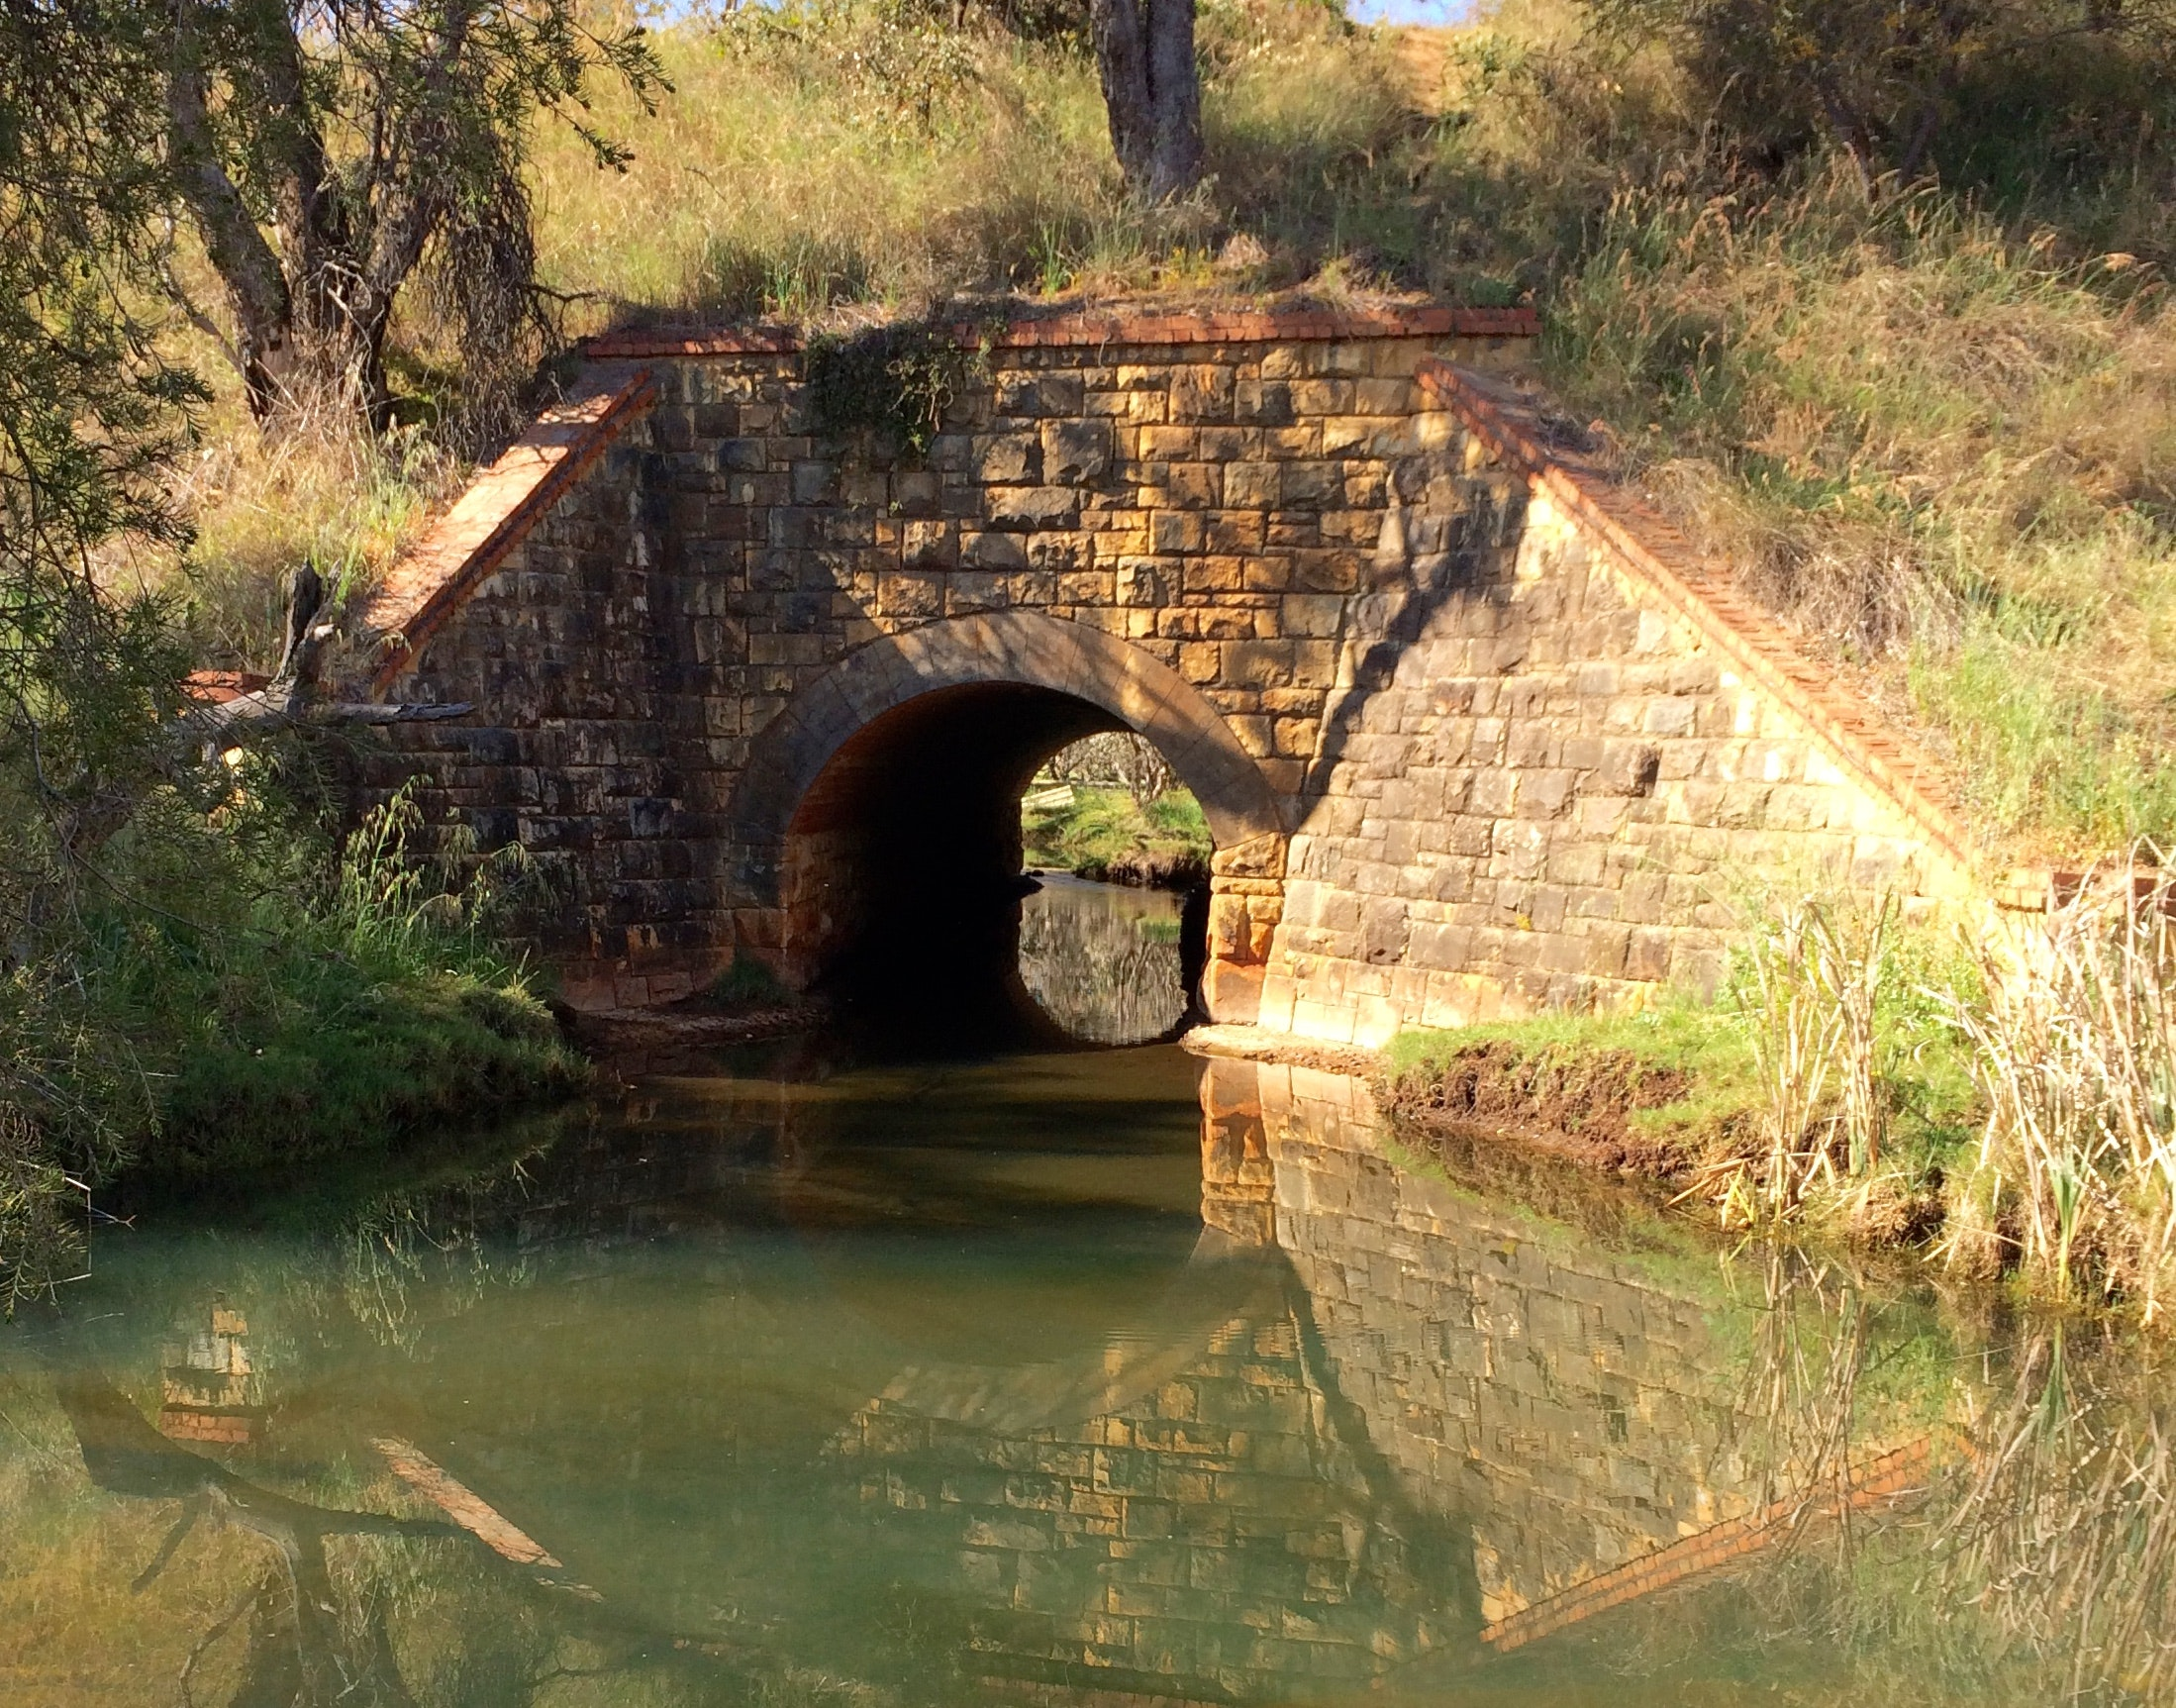 Stone Culvert near Harper Rd Crossing